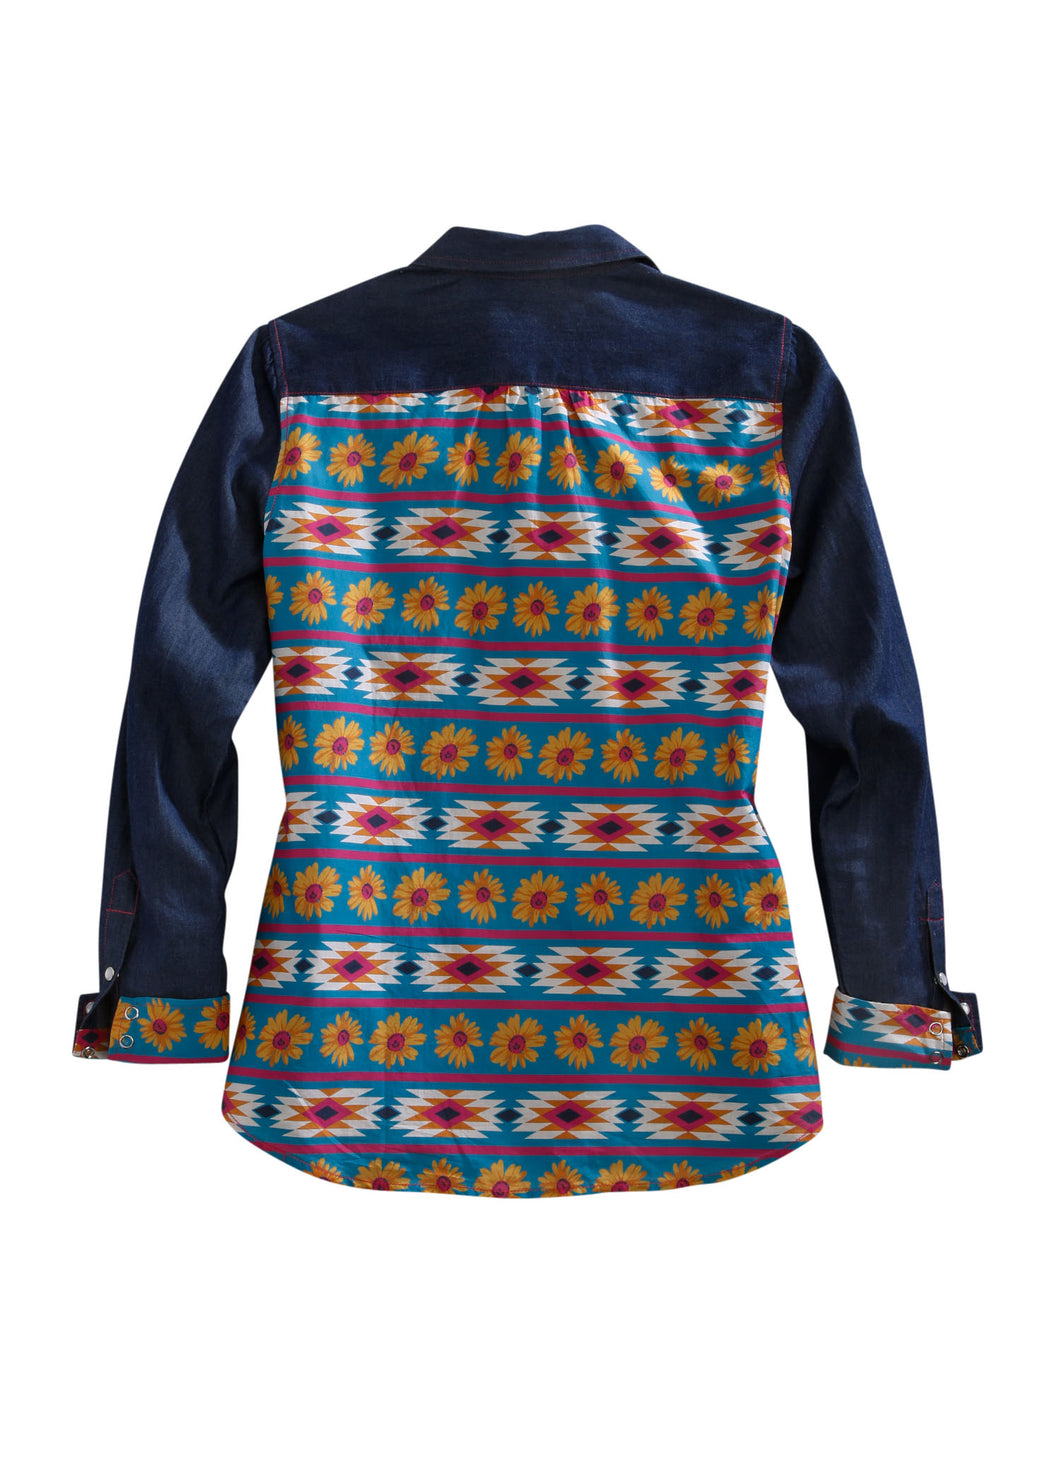 Tin Haul Collection Tinhaul Womens Long Sleeve 00131 Lt Wt Denim Pcd Wdaisy Aztec